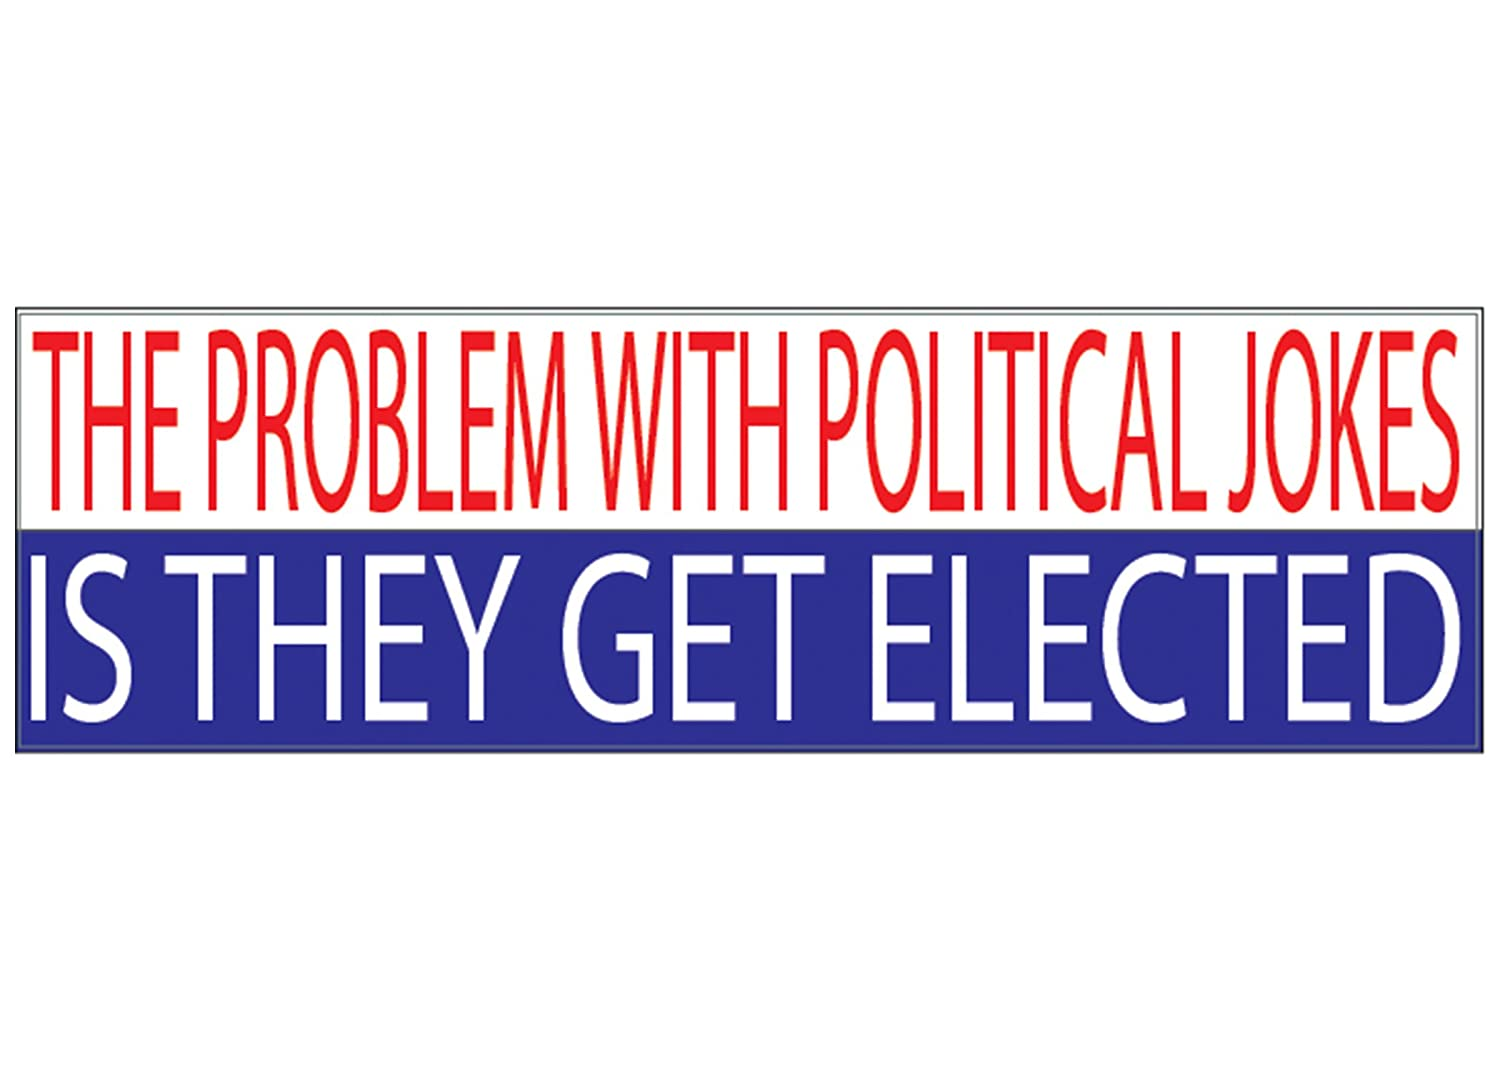 Political Bumper Sticker 10x3 Auto Decal The Problem With Political Jokes Is They Get Elected Conservative Liberal Republican Democrat Car Truck Window